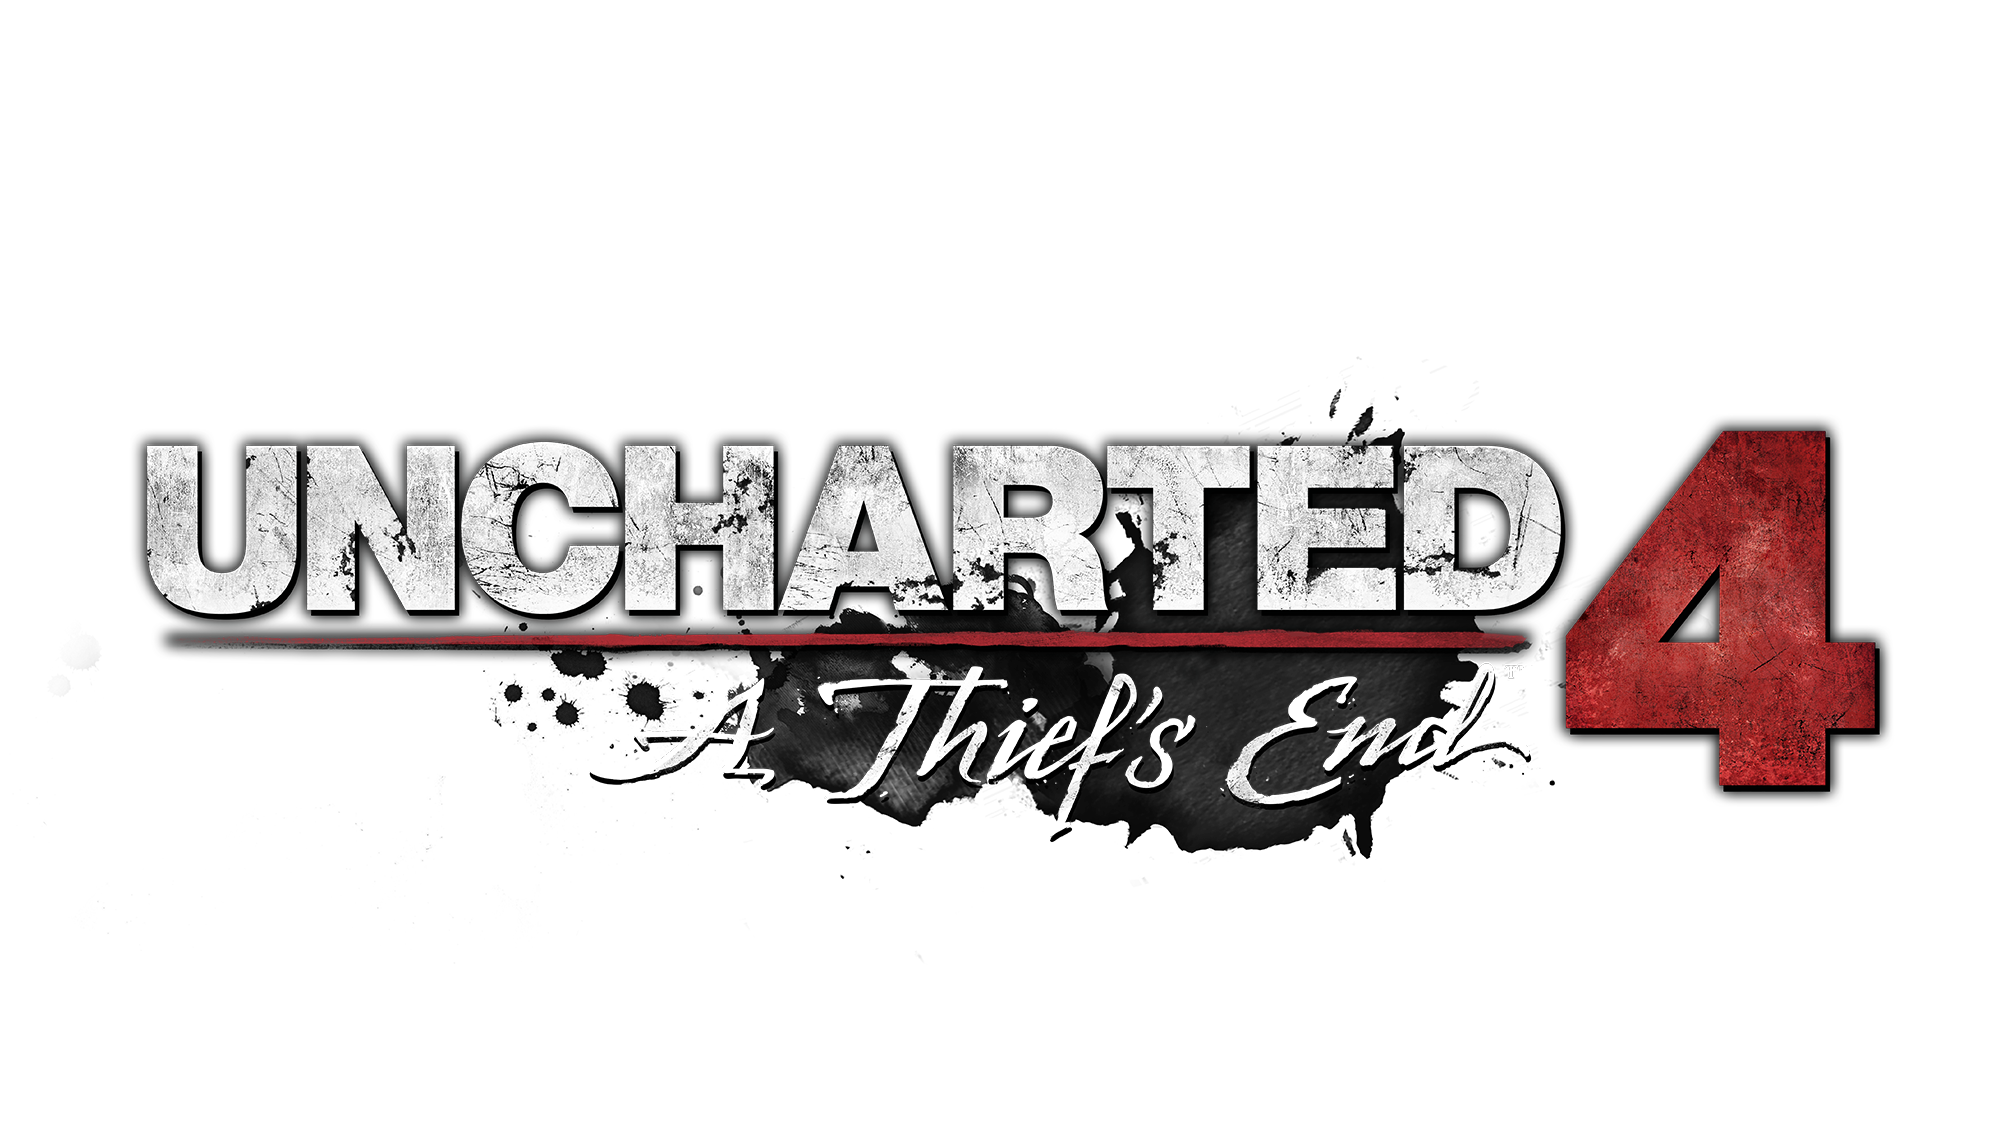 Uncharted 4: A Thief's End Wallpapers Images Photos Pictures